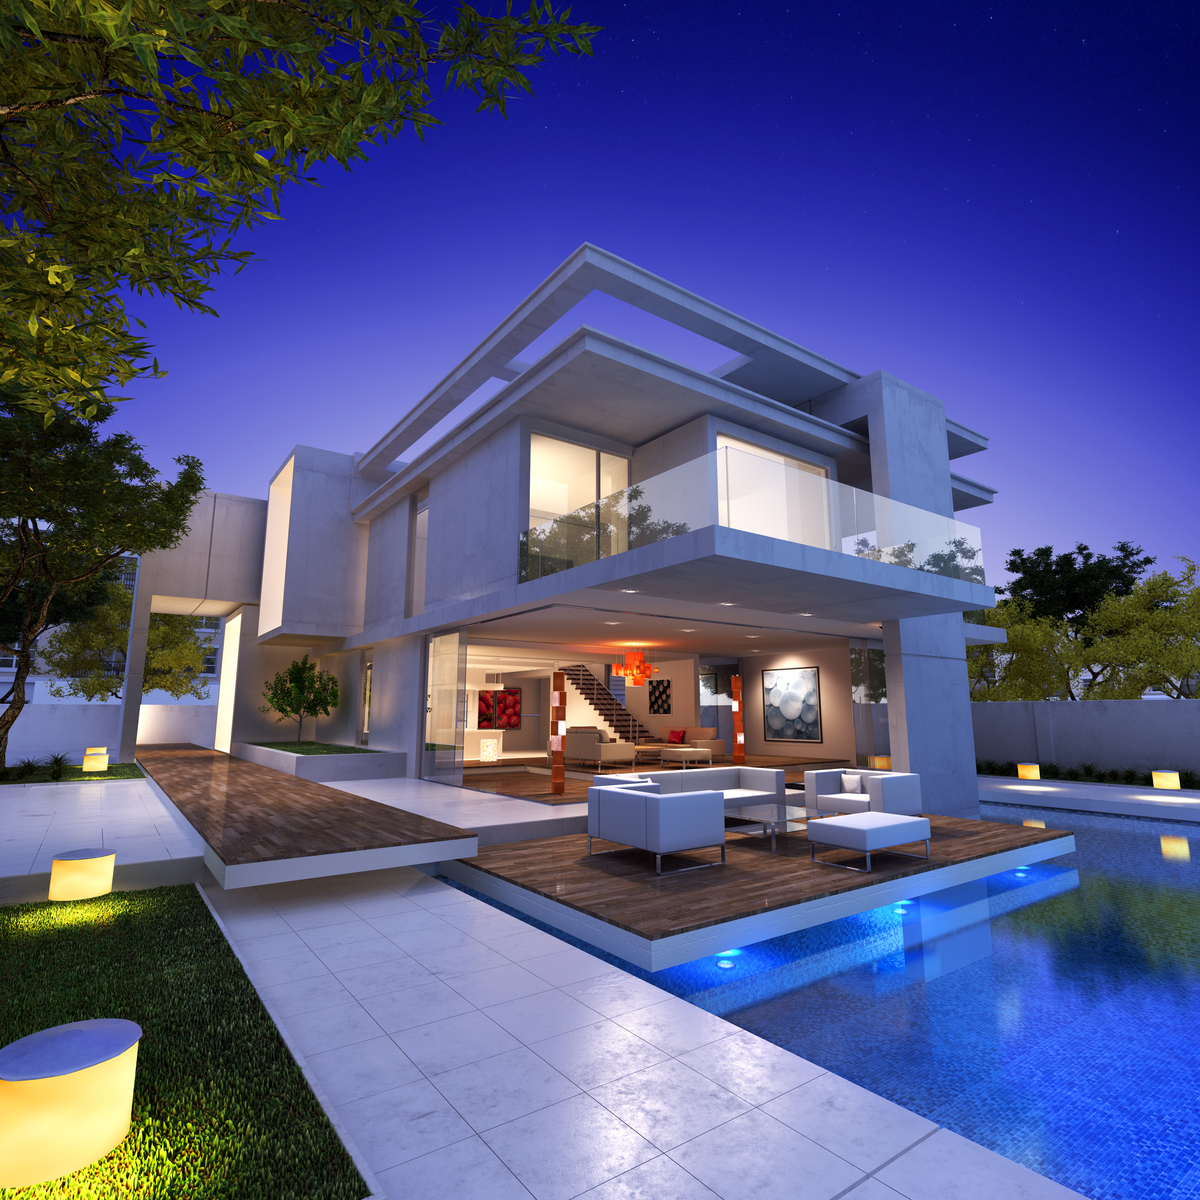 30 Images About Dream Homes On We Heart It